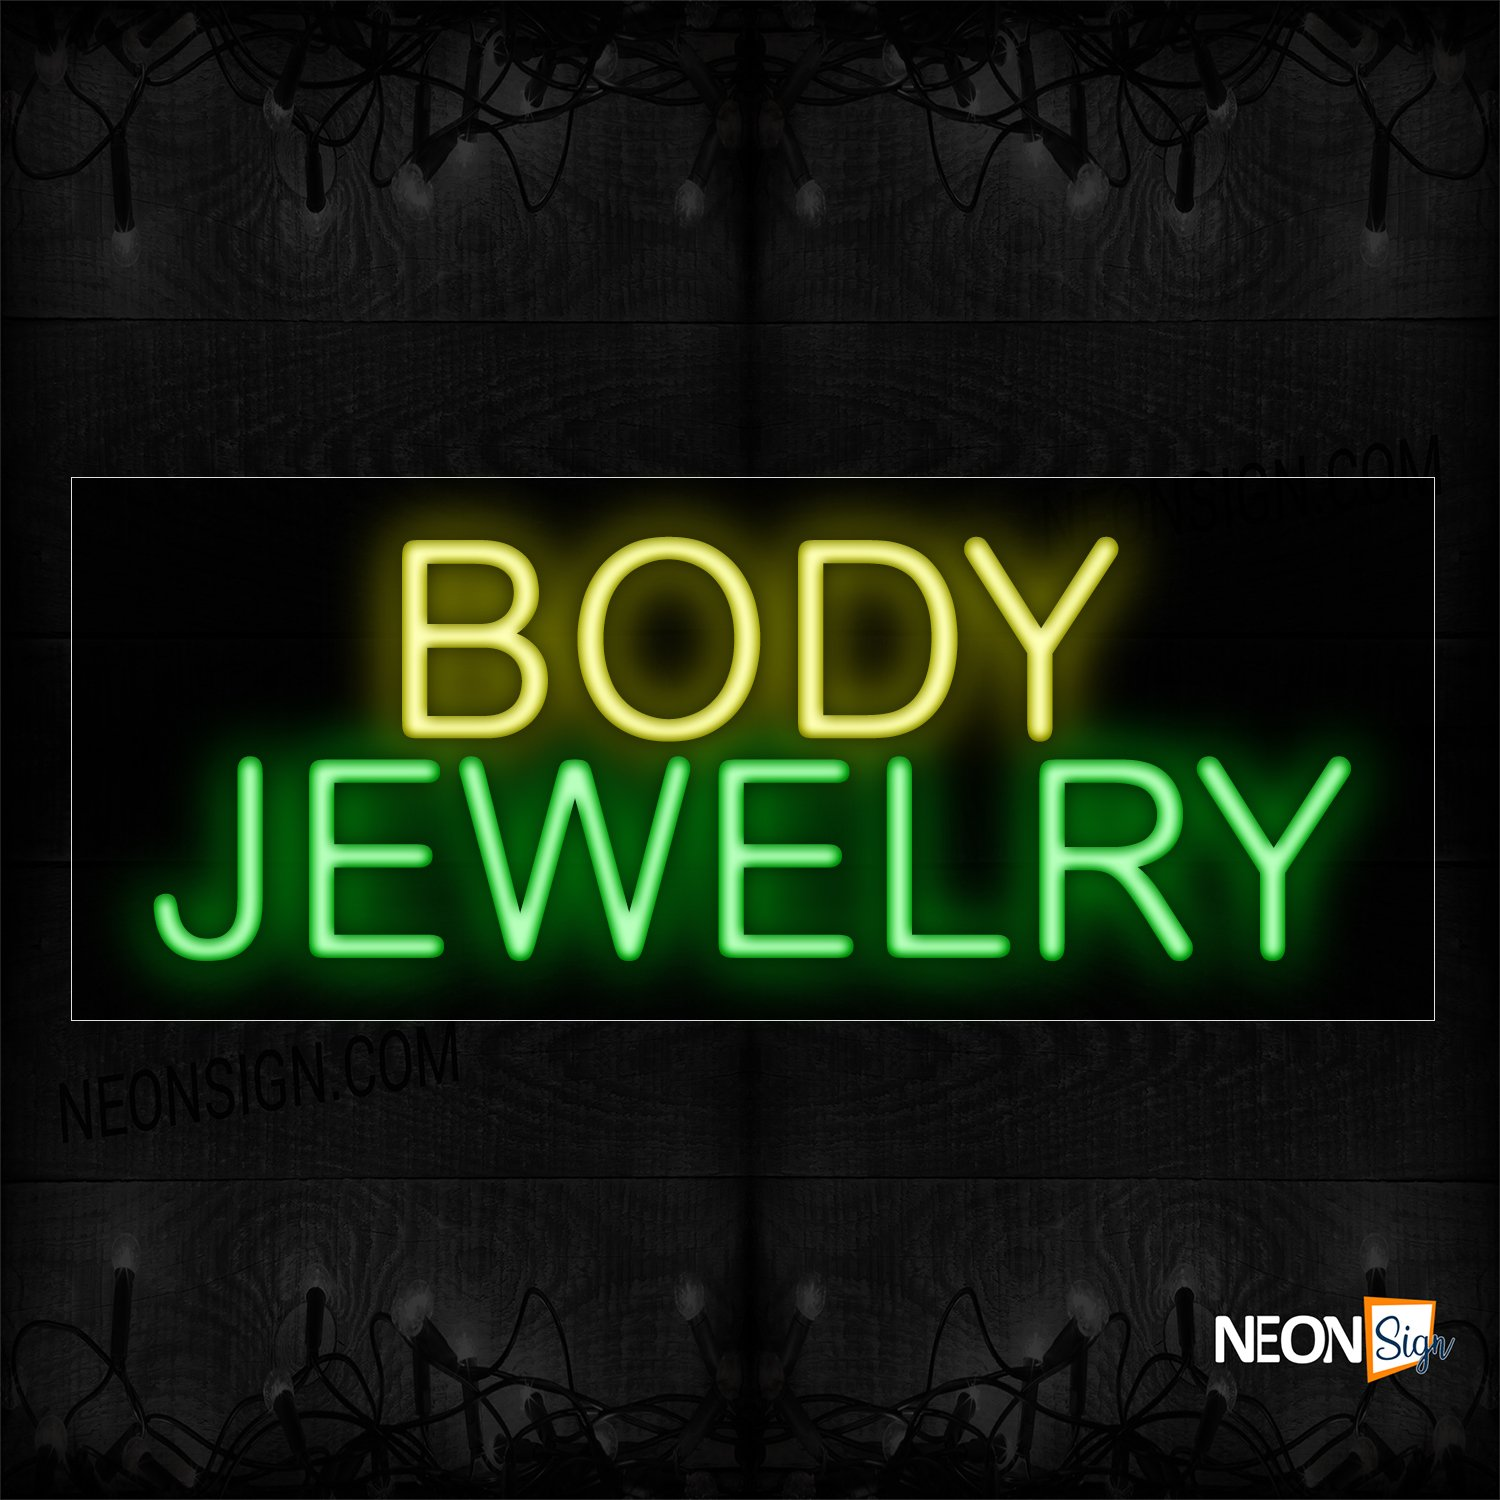 Image of 12018Body Jewelry in Yellow and red Neon Sign_10x24 Black Backing